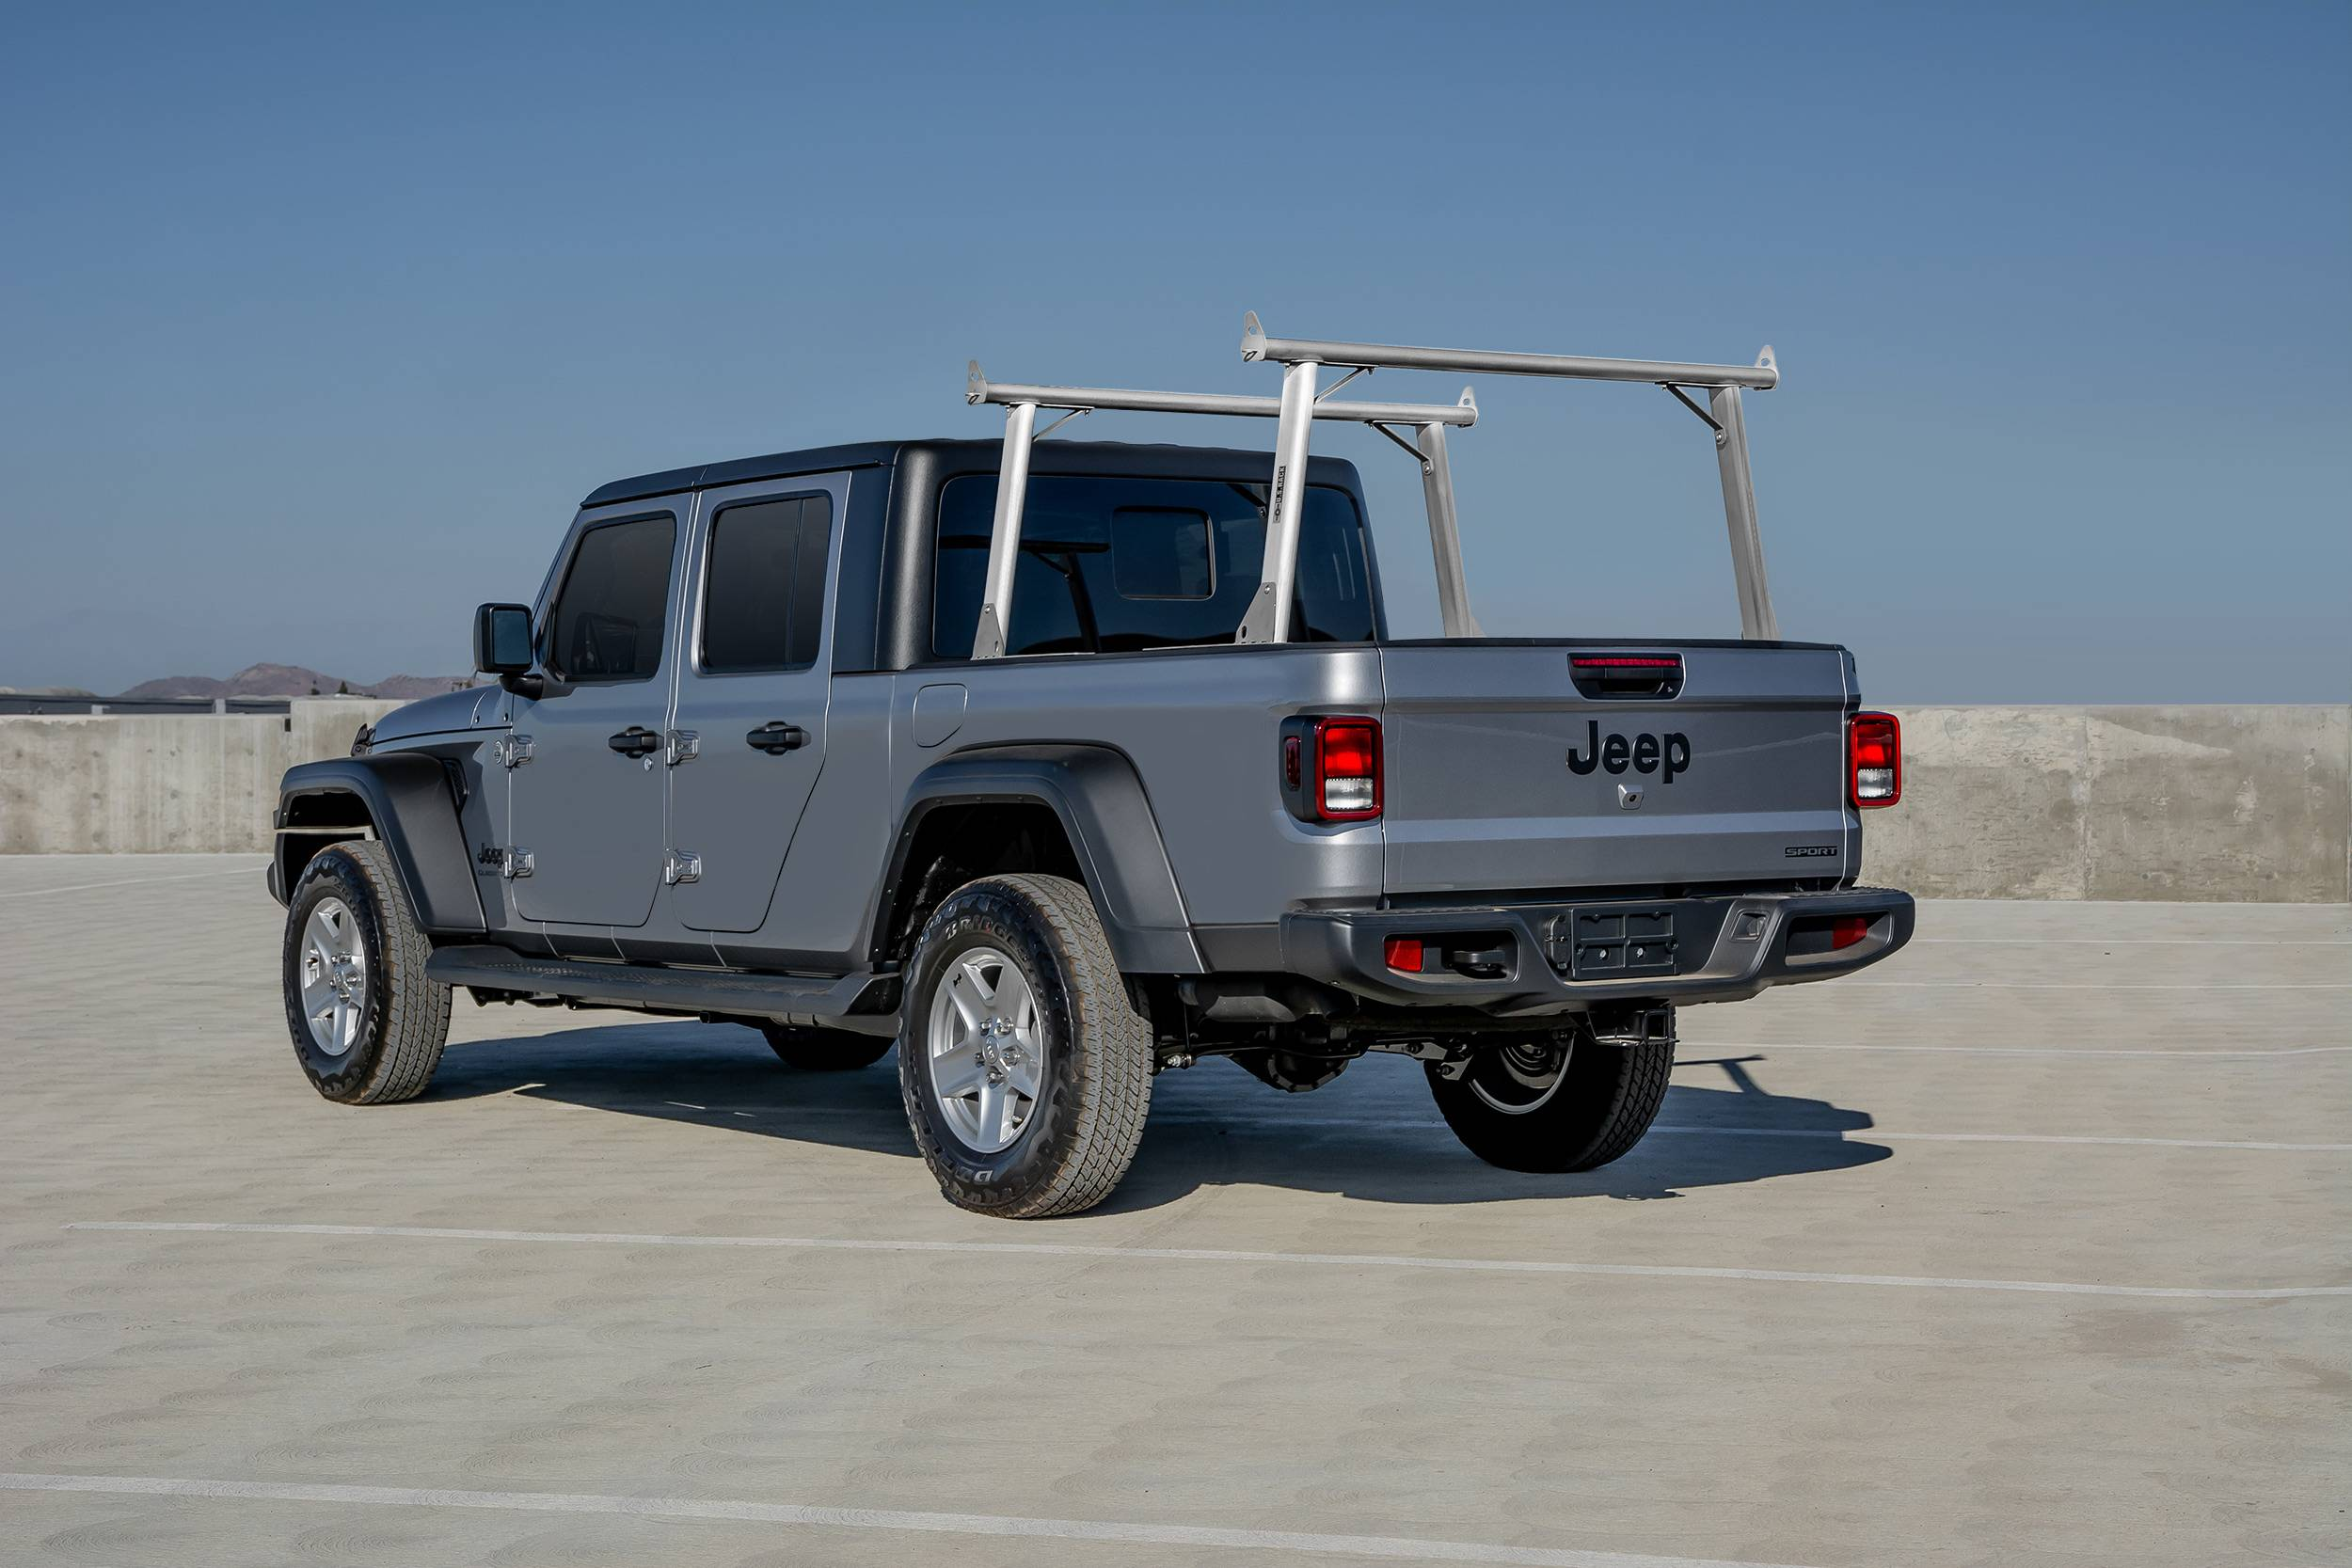 2020 Jeep Gladiator Clipper Truck Rack, Fleetside, Track System, Above Cab Height, Brushed Cross Bar and Legs With Bead Blasted Base - PN #82240150